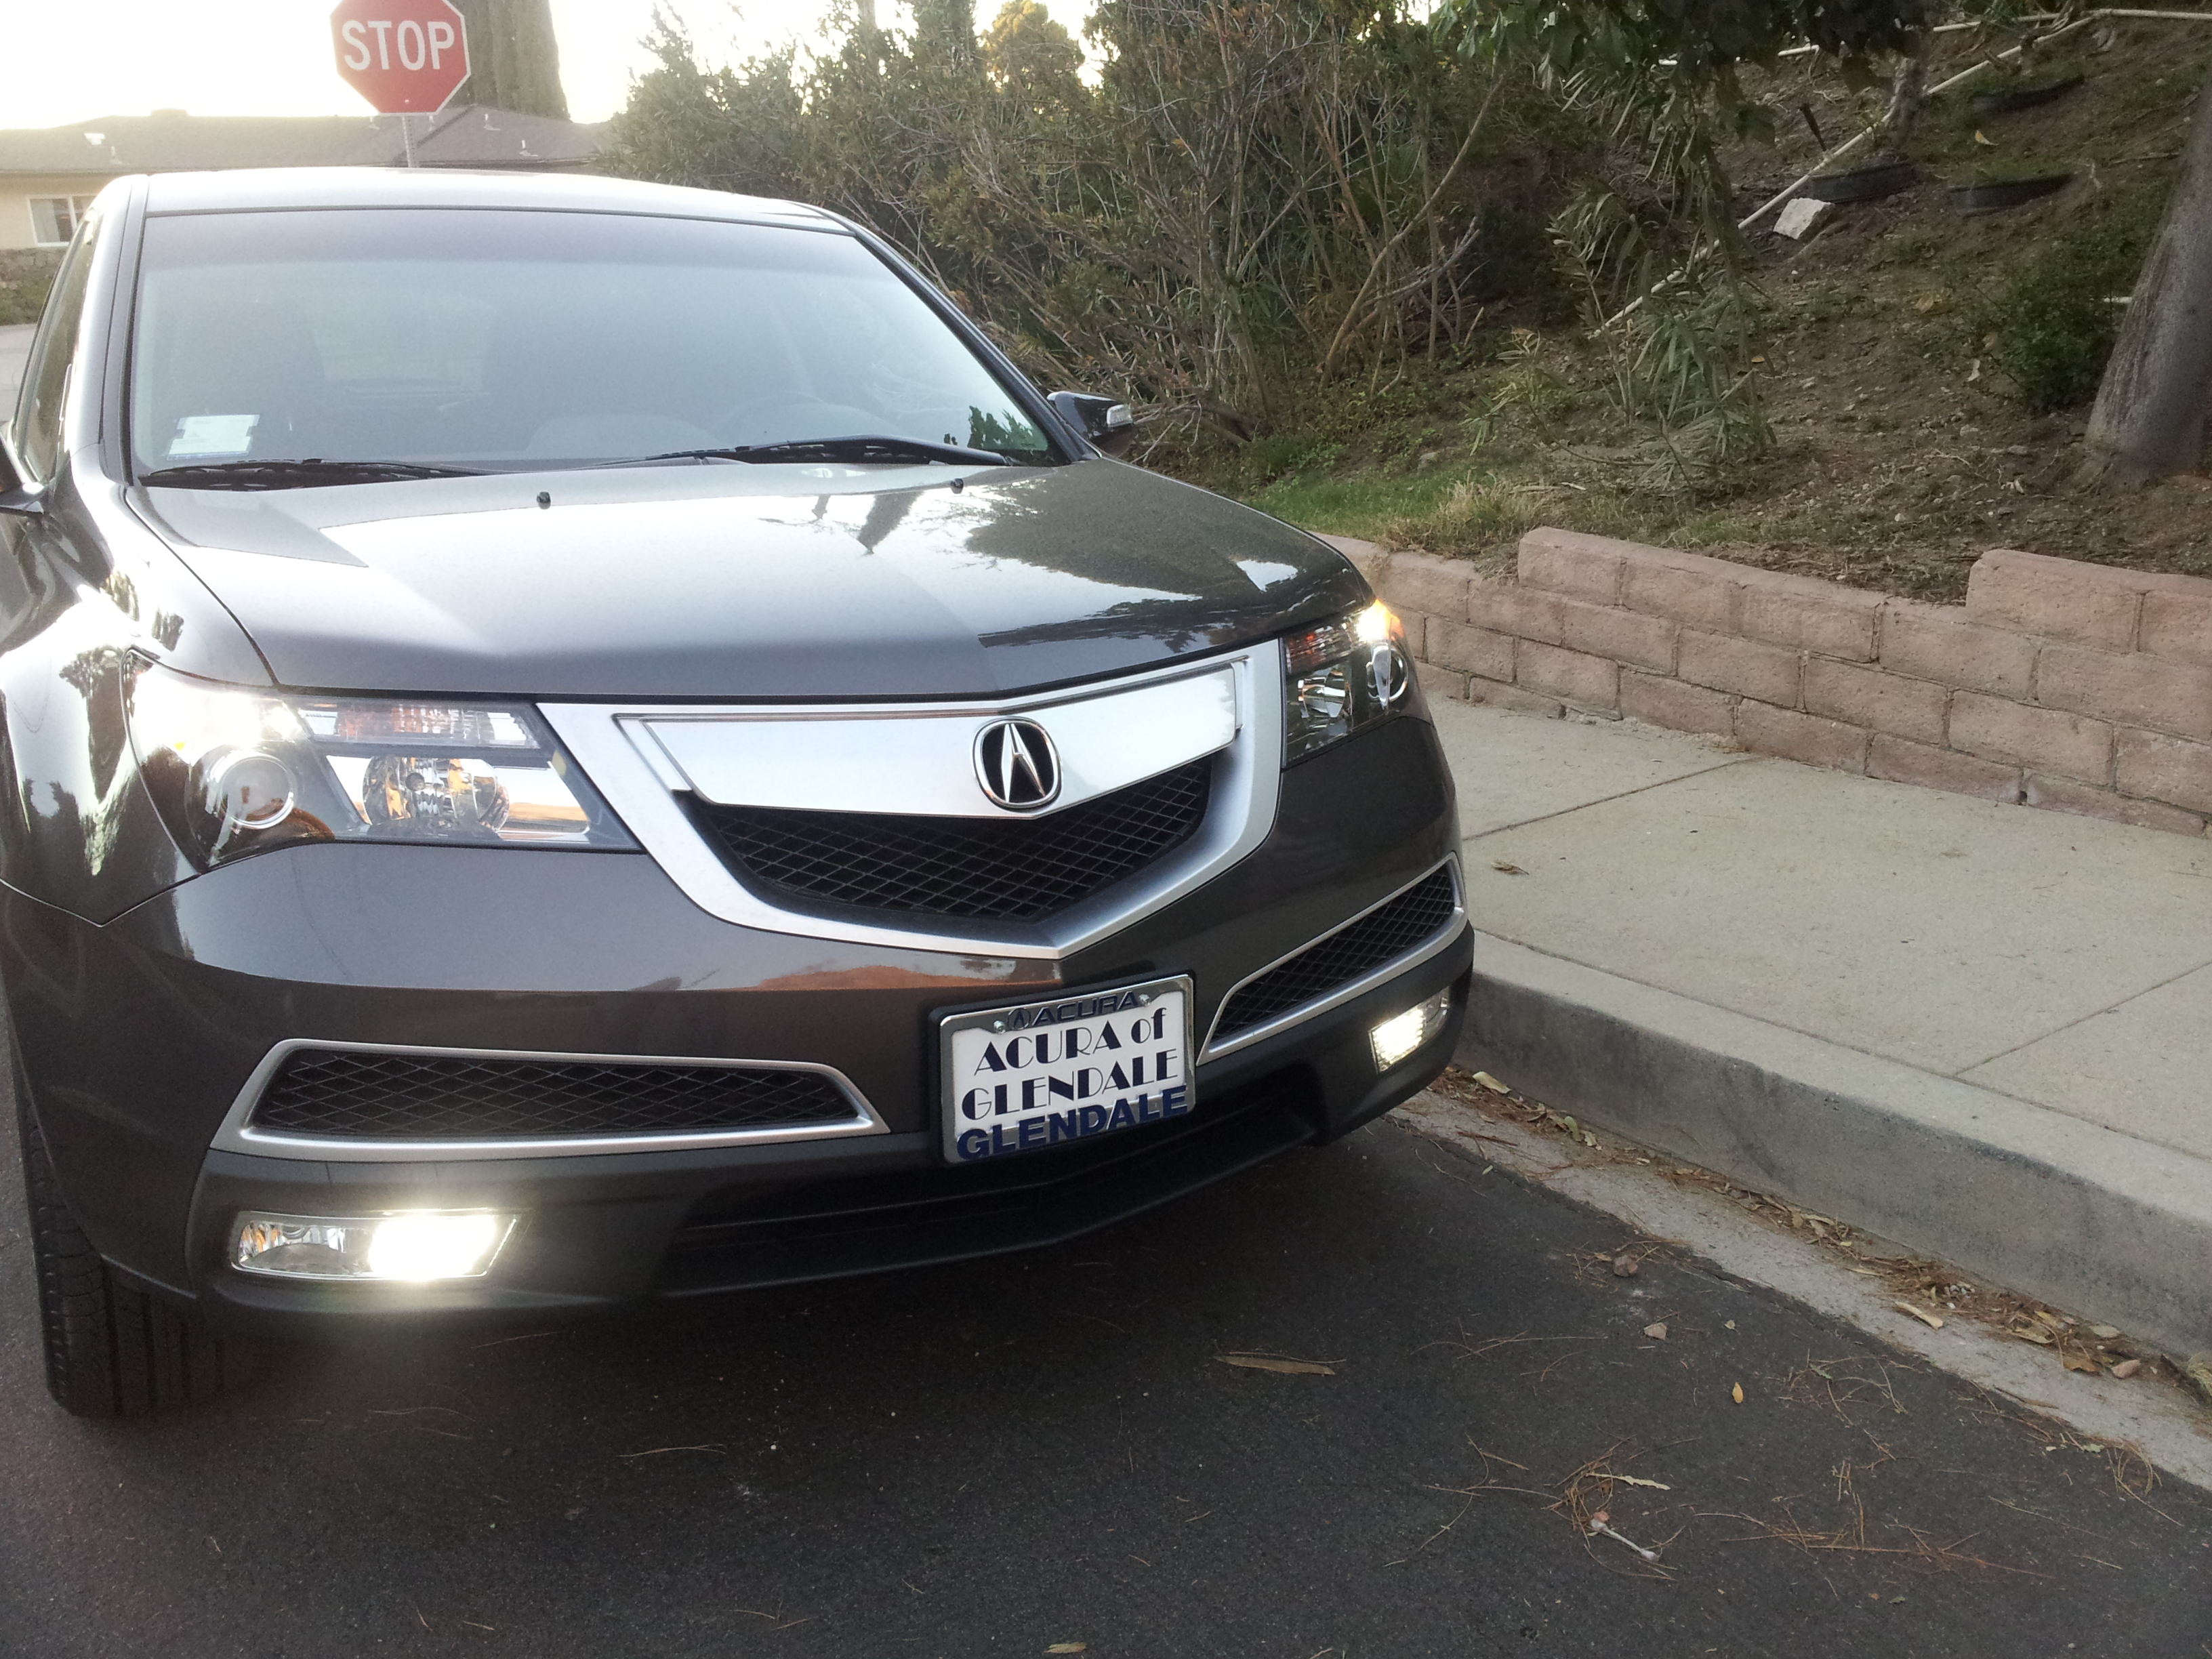 HID Fog/LED DRL Installed - PICS-20121025_175723.jpg